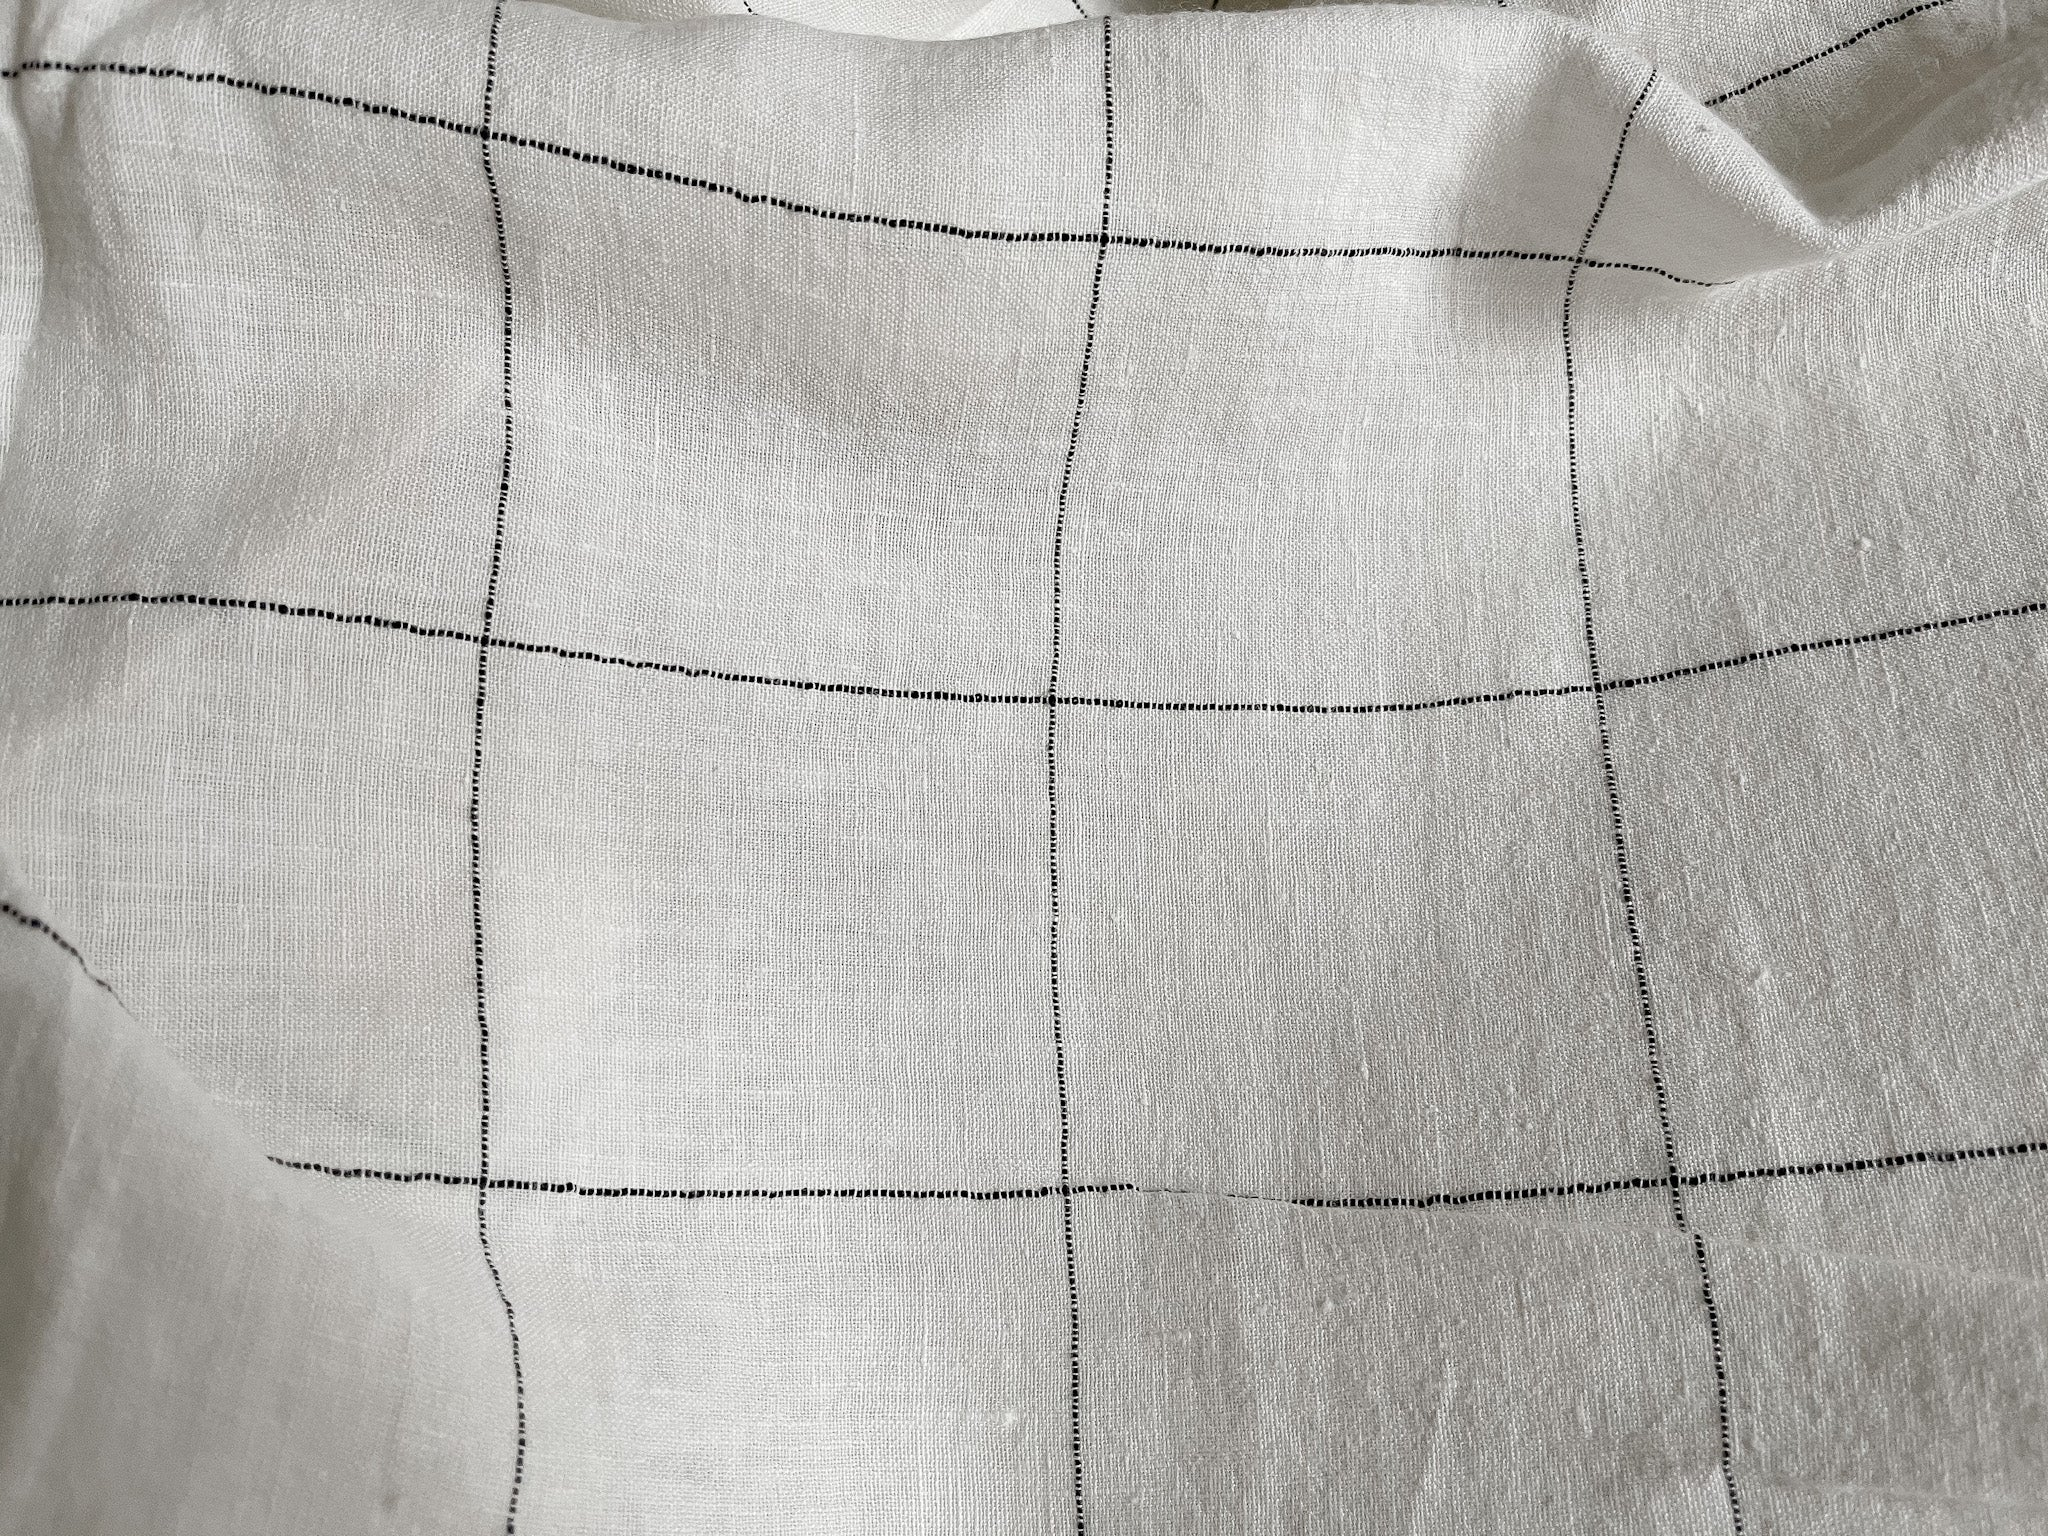 Ivory and Black Check Linen Fabric - Extra Wide Stone Washed Super Soft